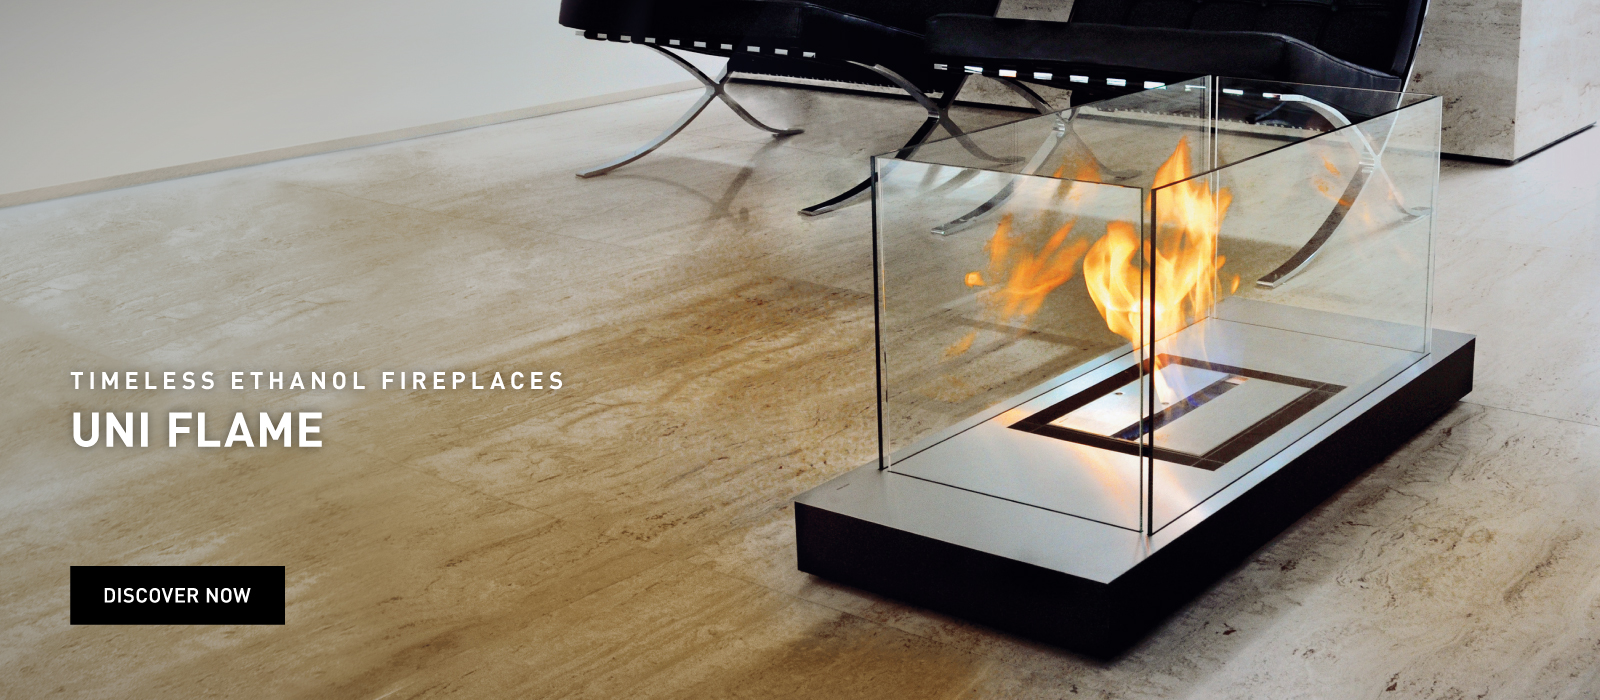 Uni Flame Ethanol Fireplaces